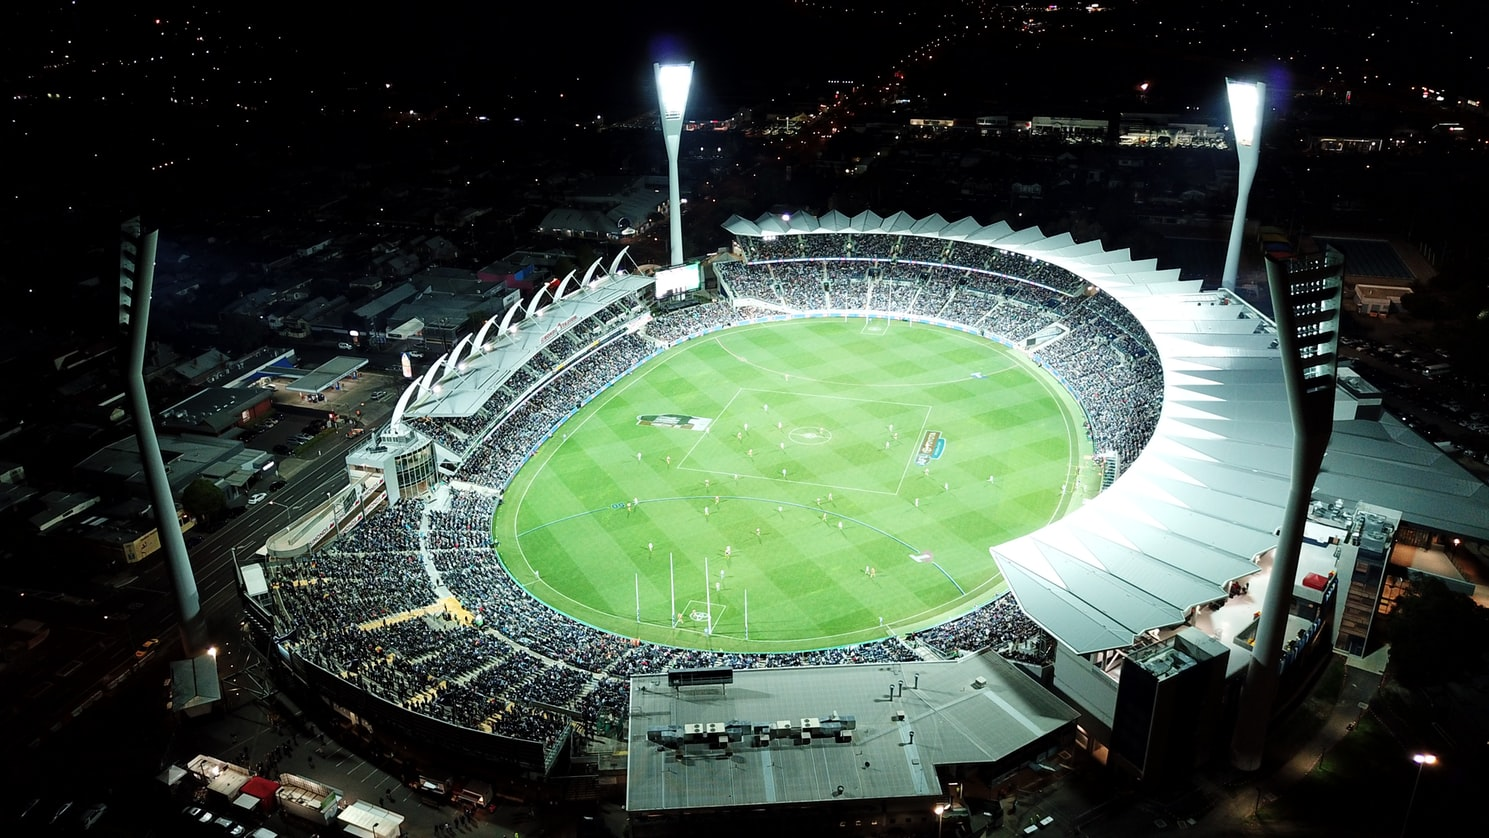 Closed for AFL Grand Final public holiday